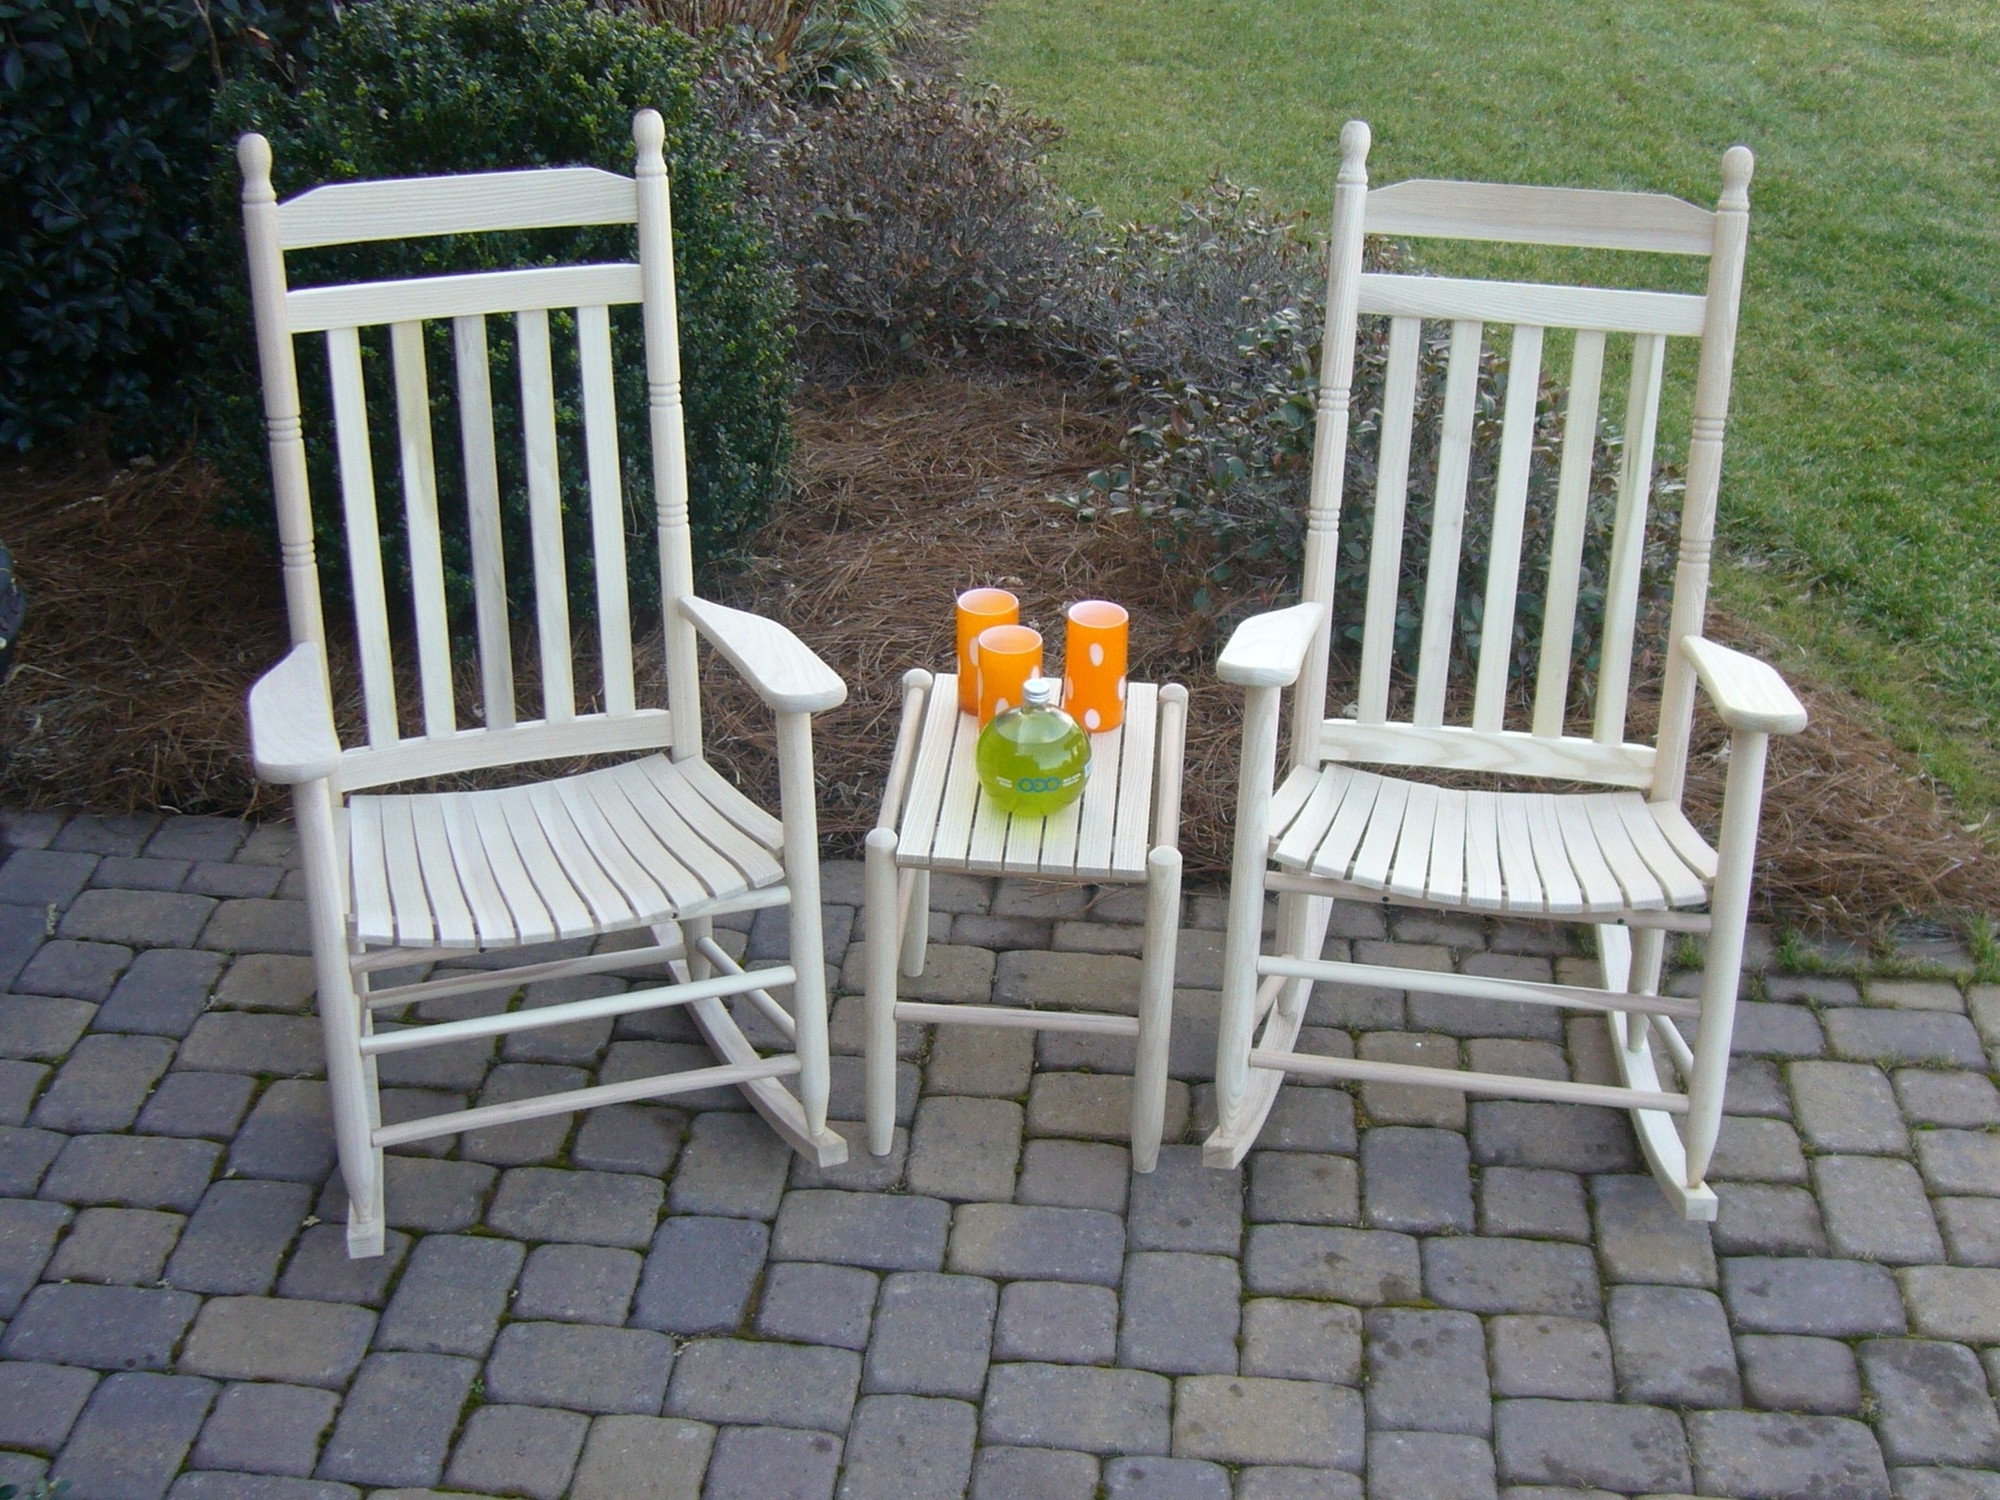 Extraordinary Porch Table And Chairs Inspirational Furniture Outdoor within Recent Patio Rocking Chairs And Table